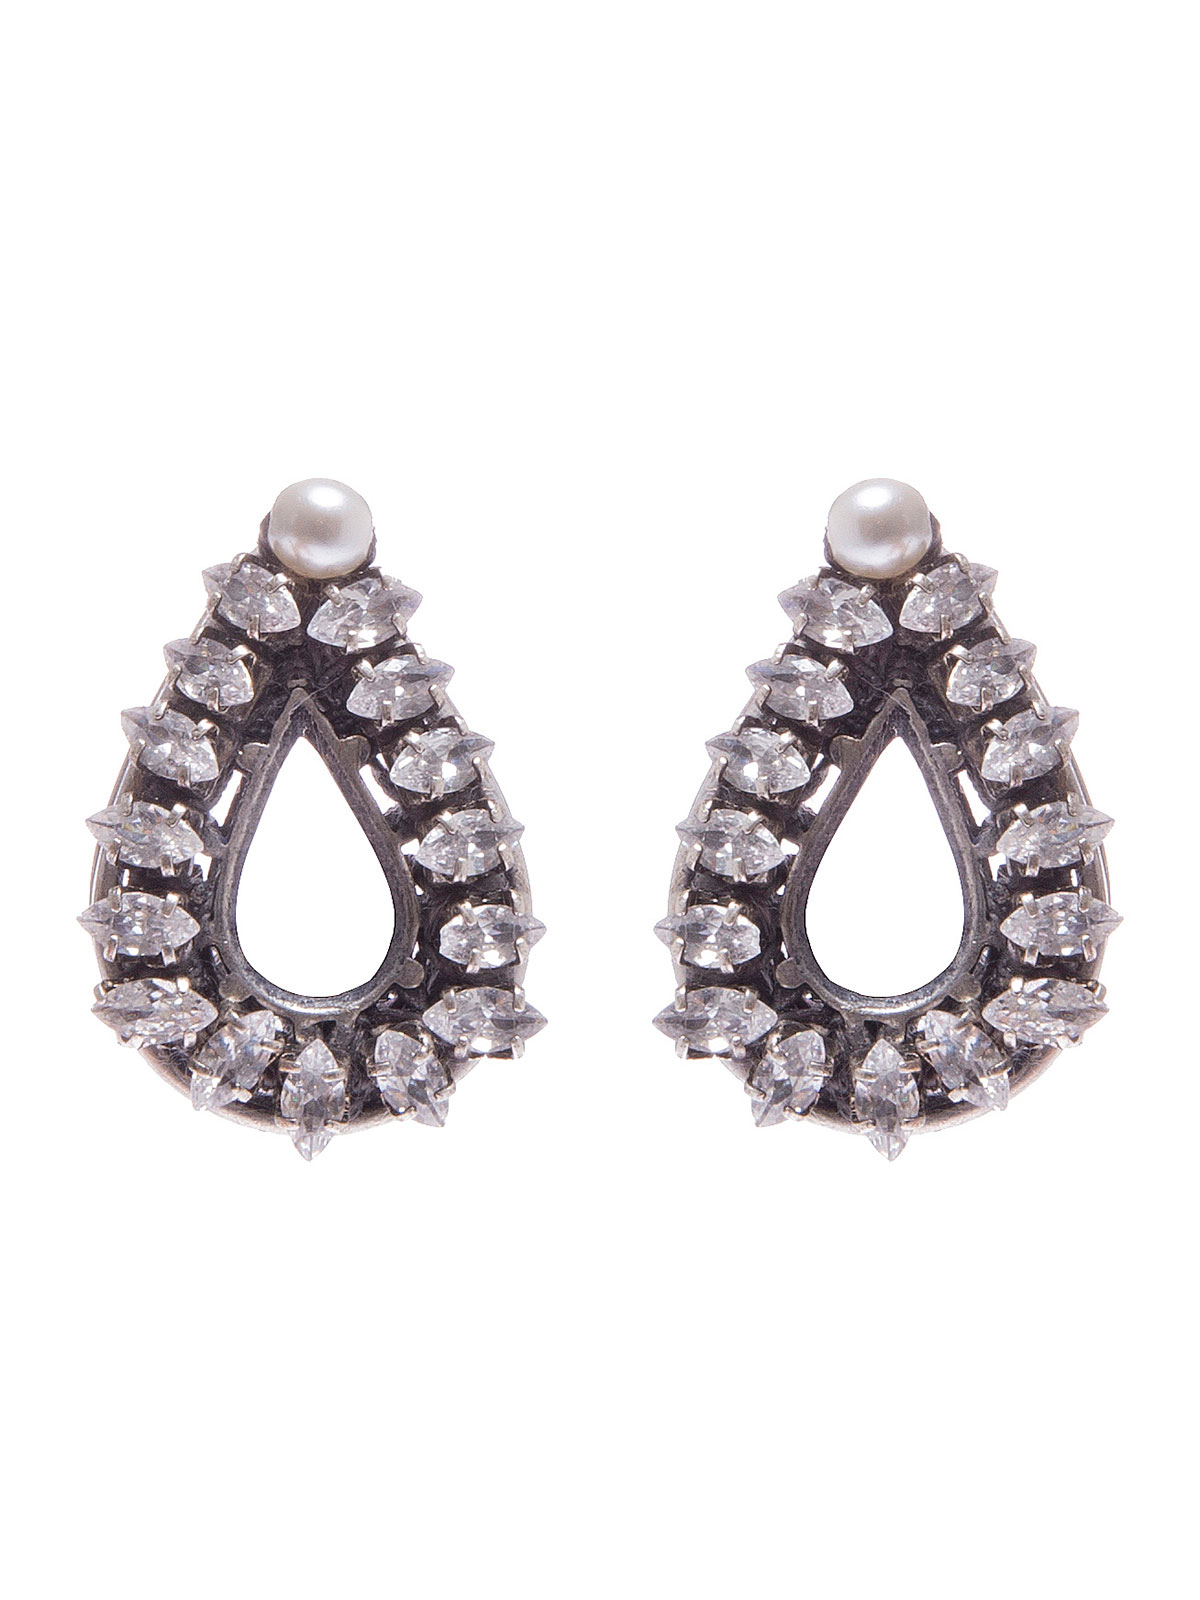 Crystal drop earrings with pendent glass pearl